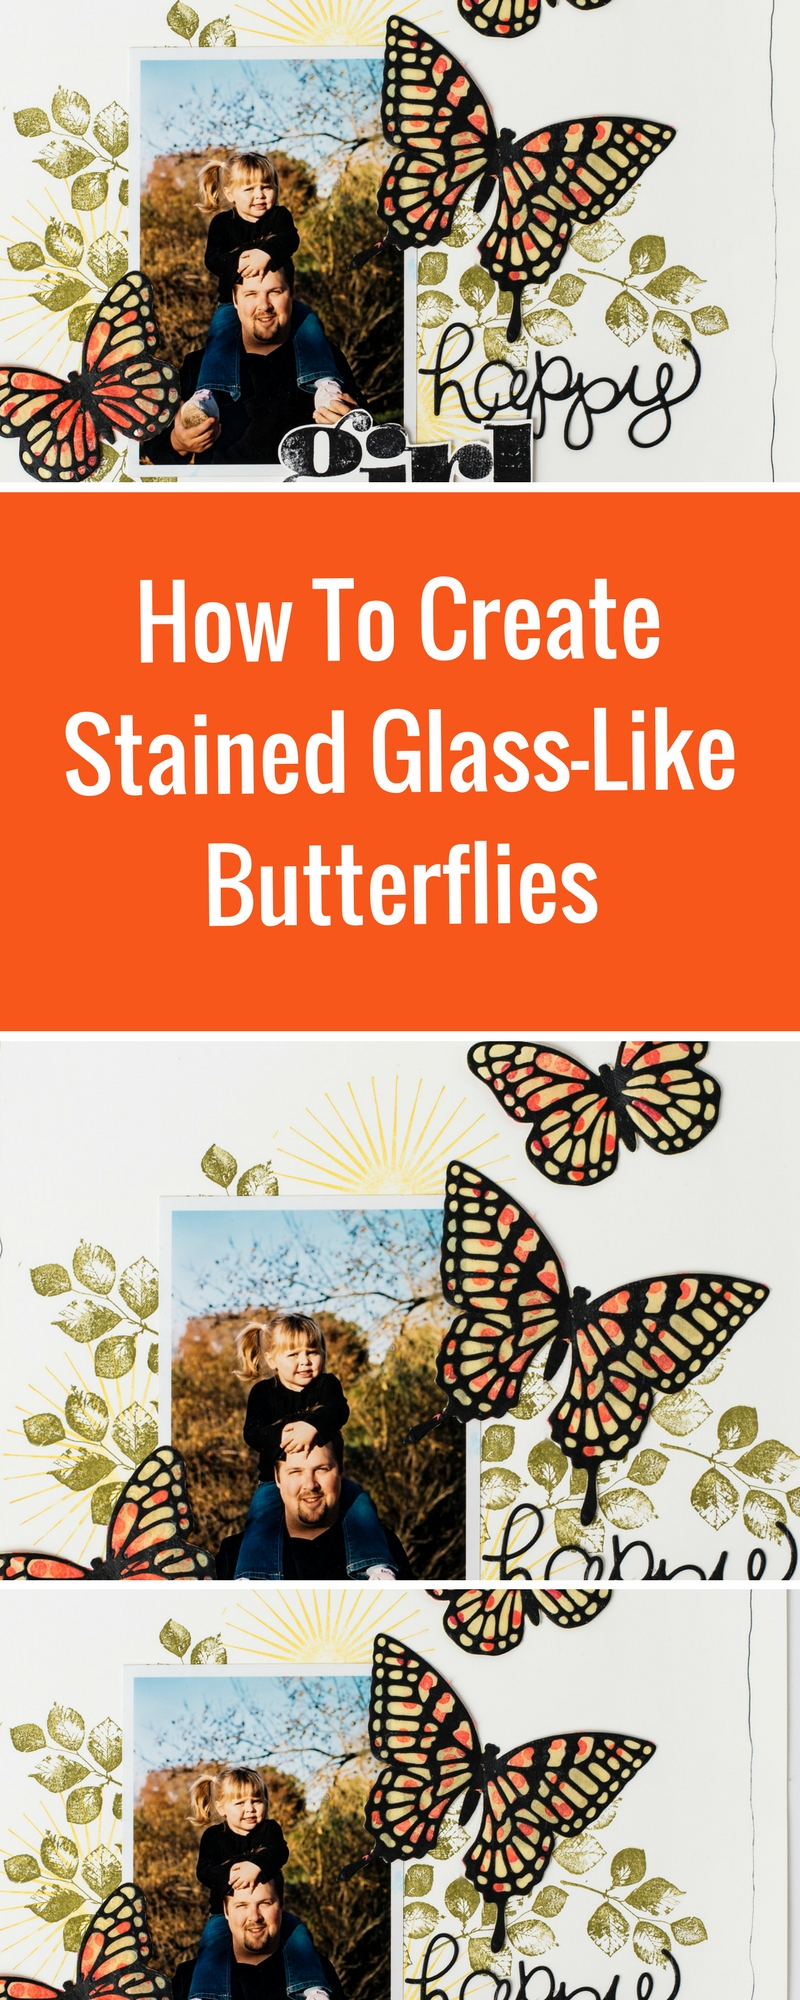 Scrapboking Ideas | How To Create Stained Glass-Like Embellishments | Featuring Stampin' Up! | Designed by Christy Riopel | Creative Scrapbooker Magazine